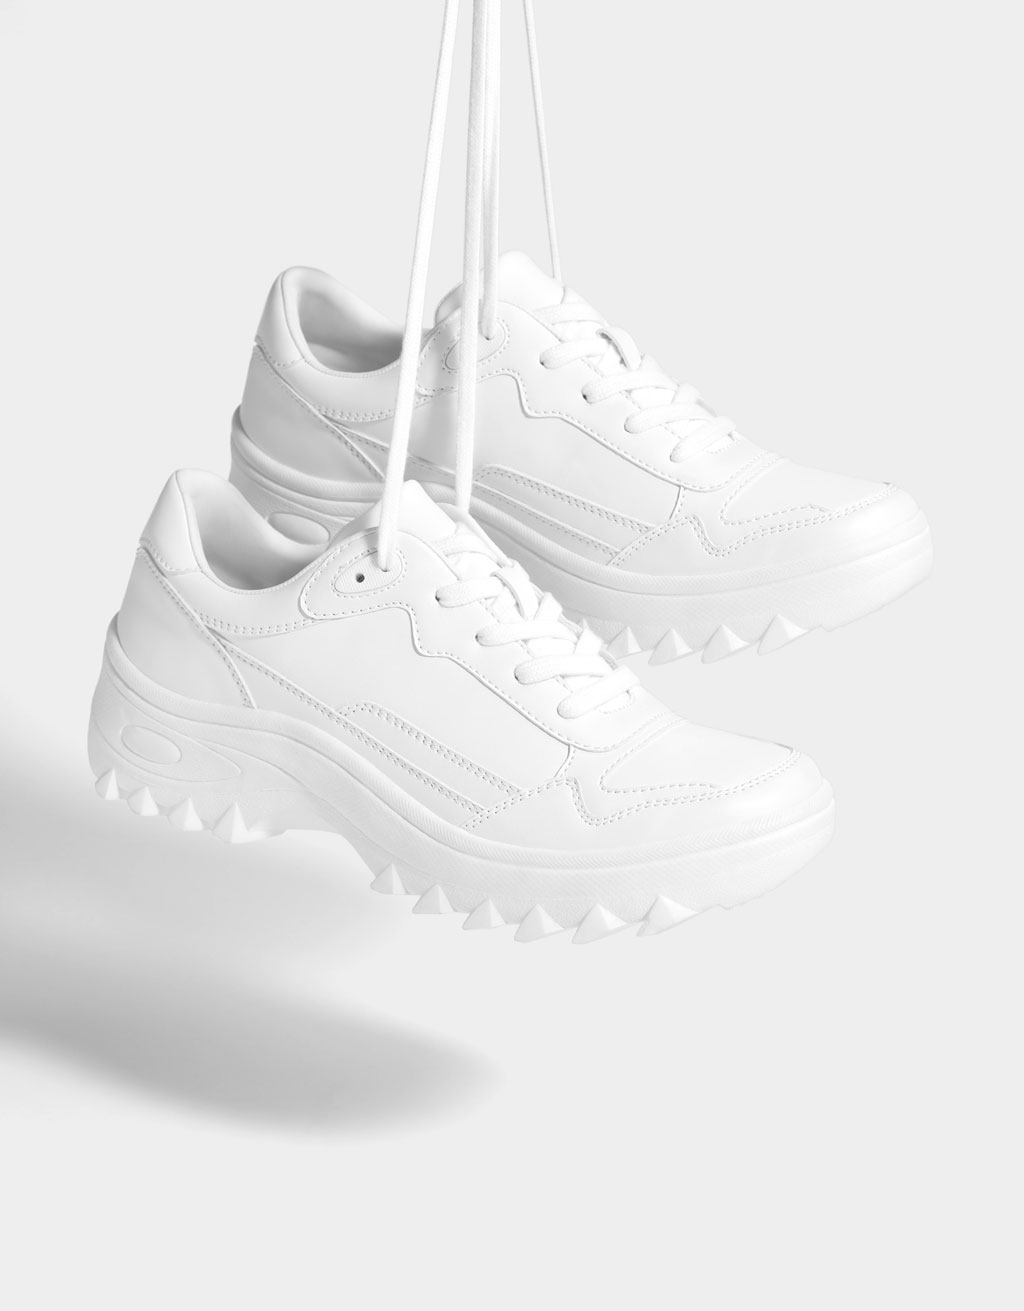 White lace-up sneakers. Topstitching detail on the upper. Chunky sole with studs.